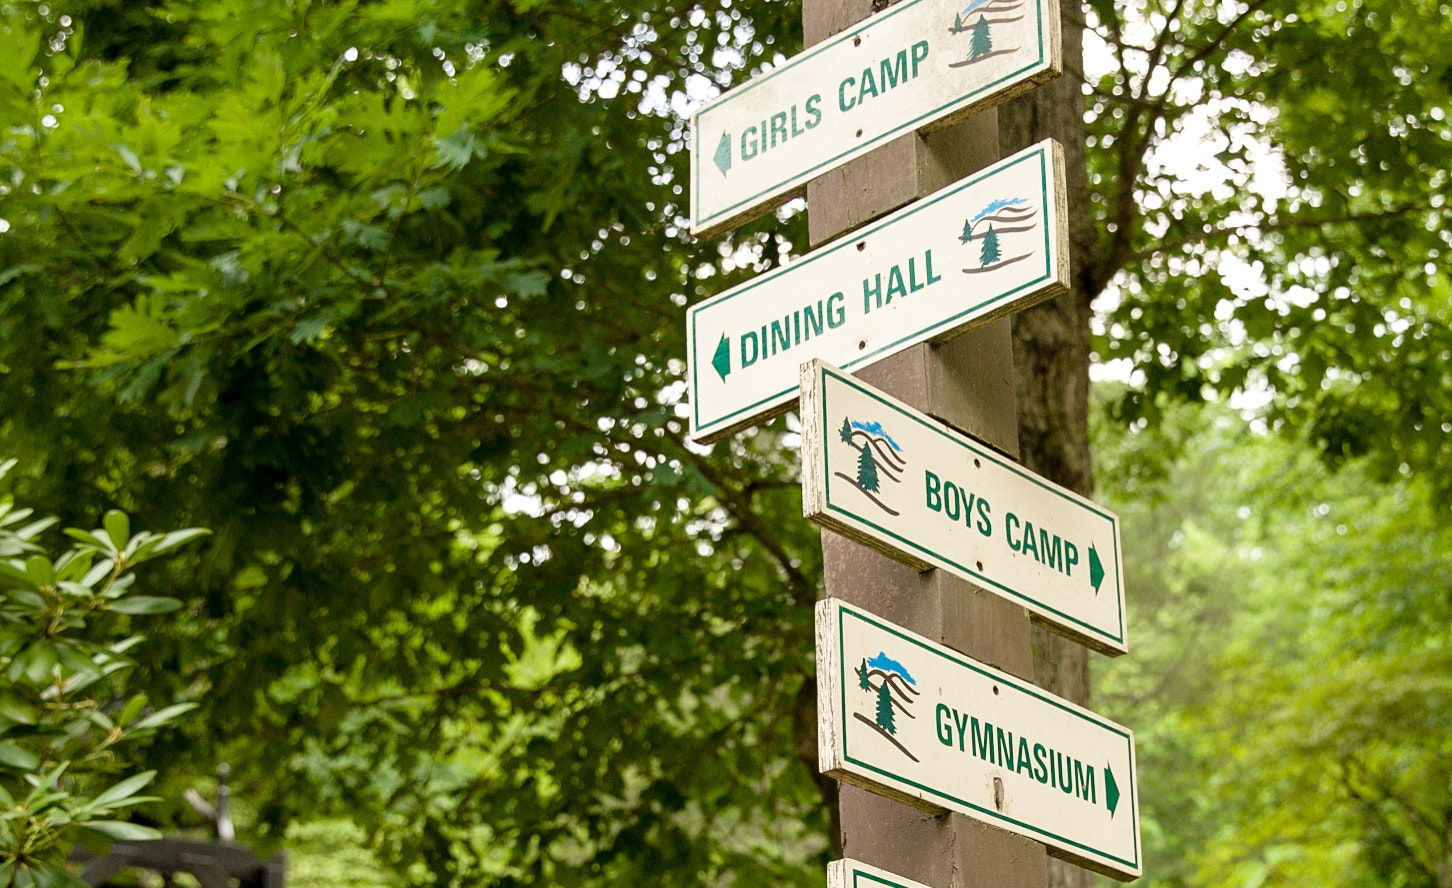 Directions to highlander coed summer camp north carolina.jpg?ixlib=rails 2.1